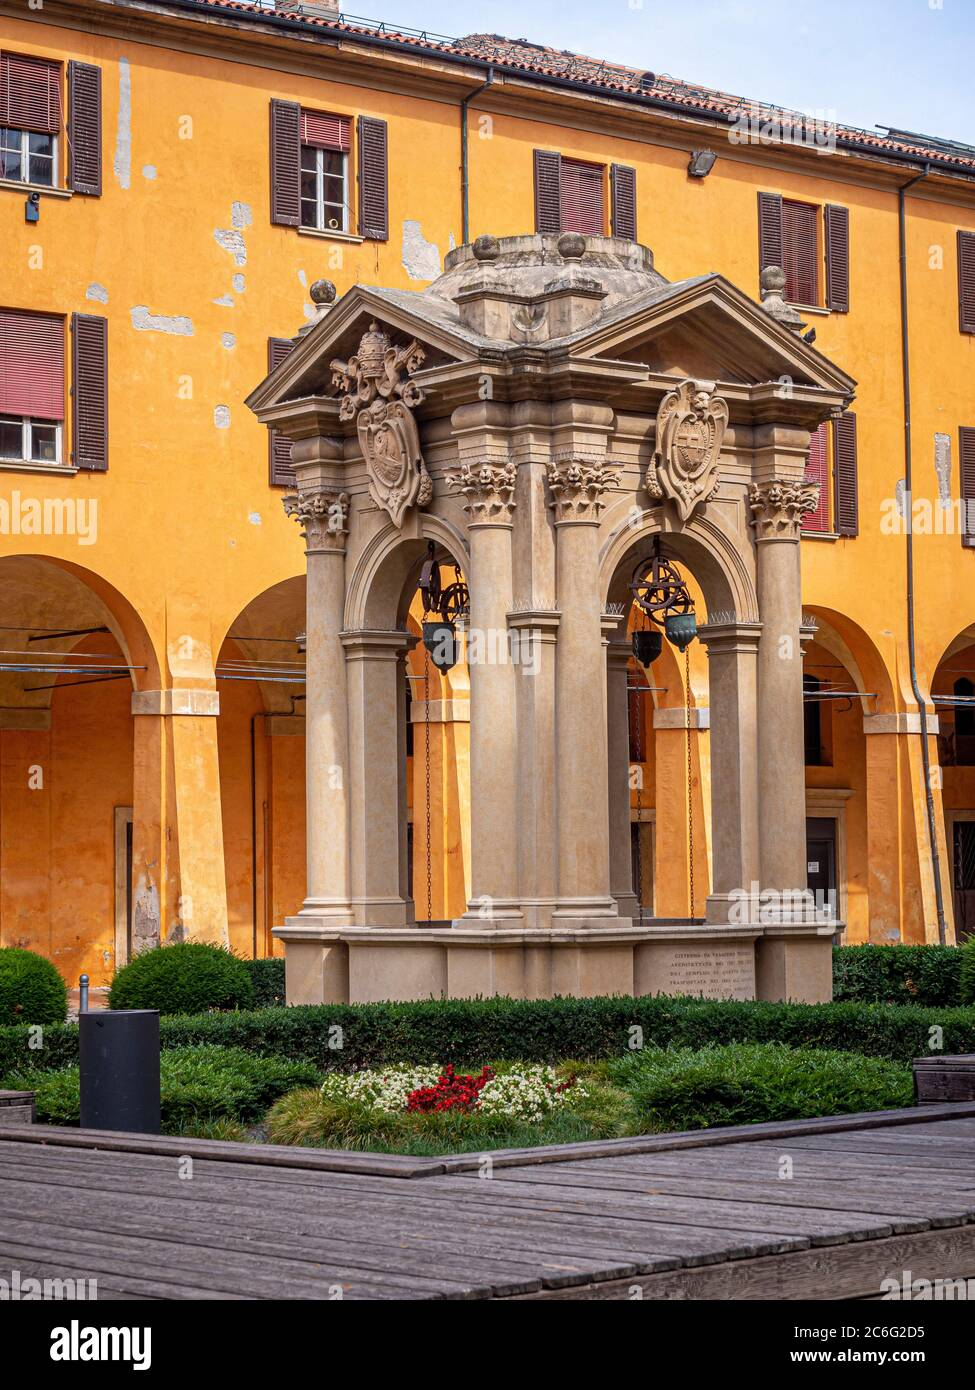 Pozzo dei desideri. Wishing well in the courtyard of Palazzo Comunale. Bologna, Italy. Stock Photo